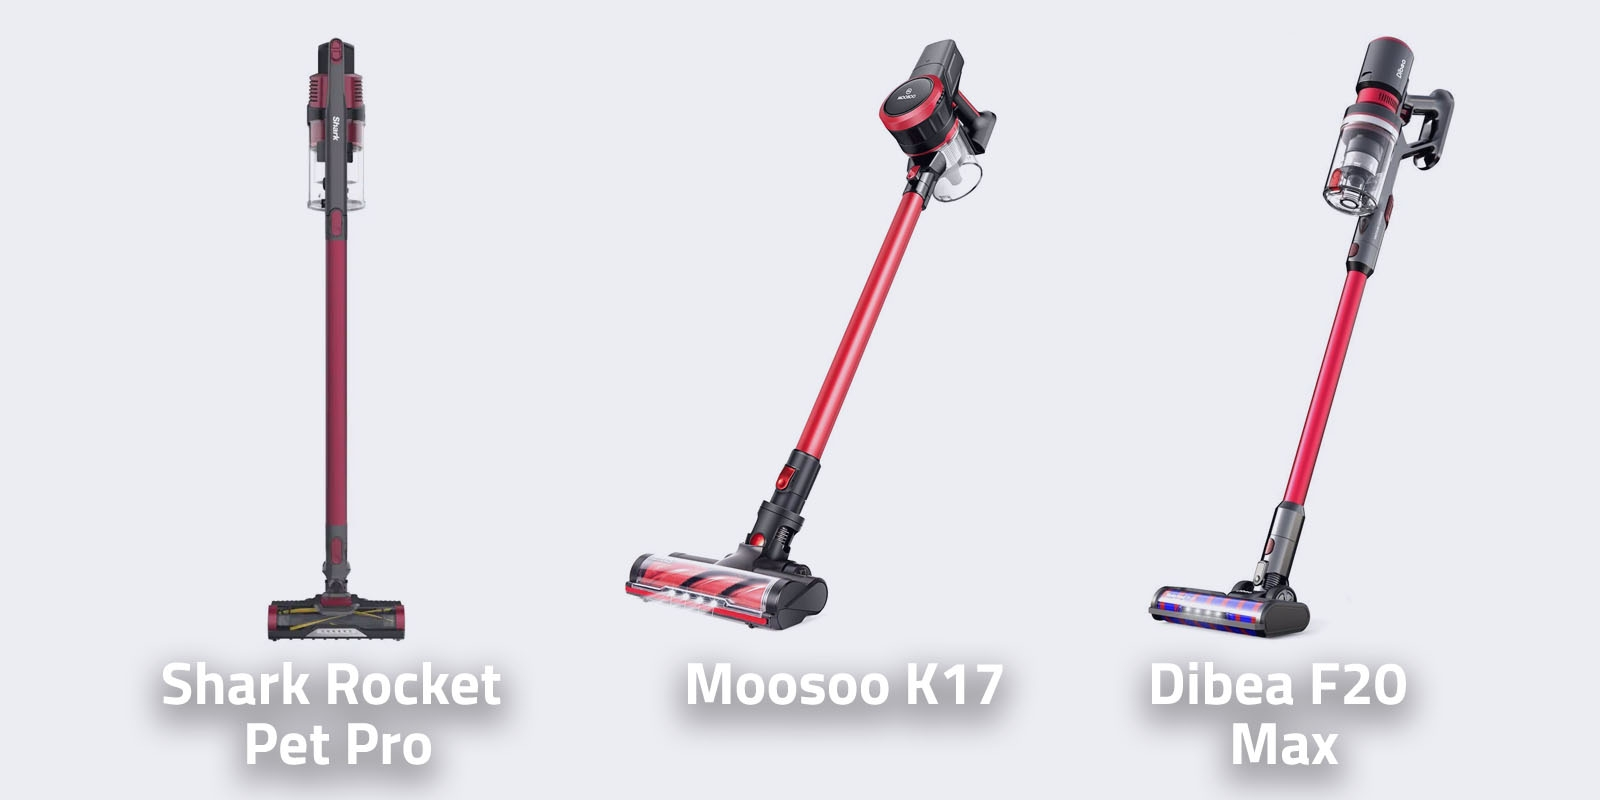 Shark Rocket Pet Pro vs Moosoo K17 vs Dibea F20 Max